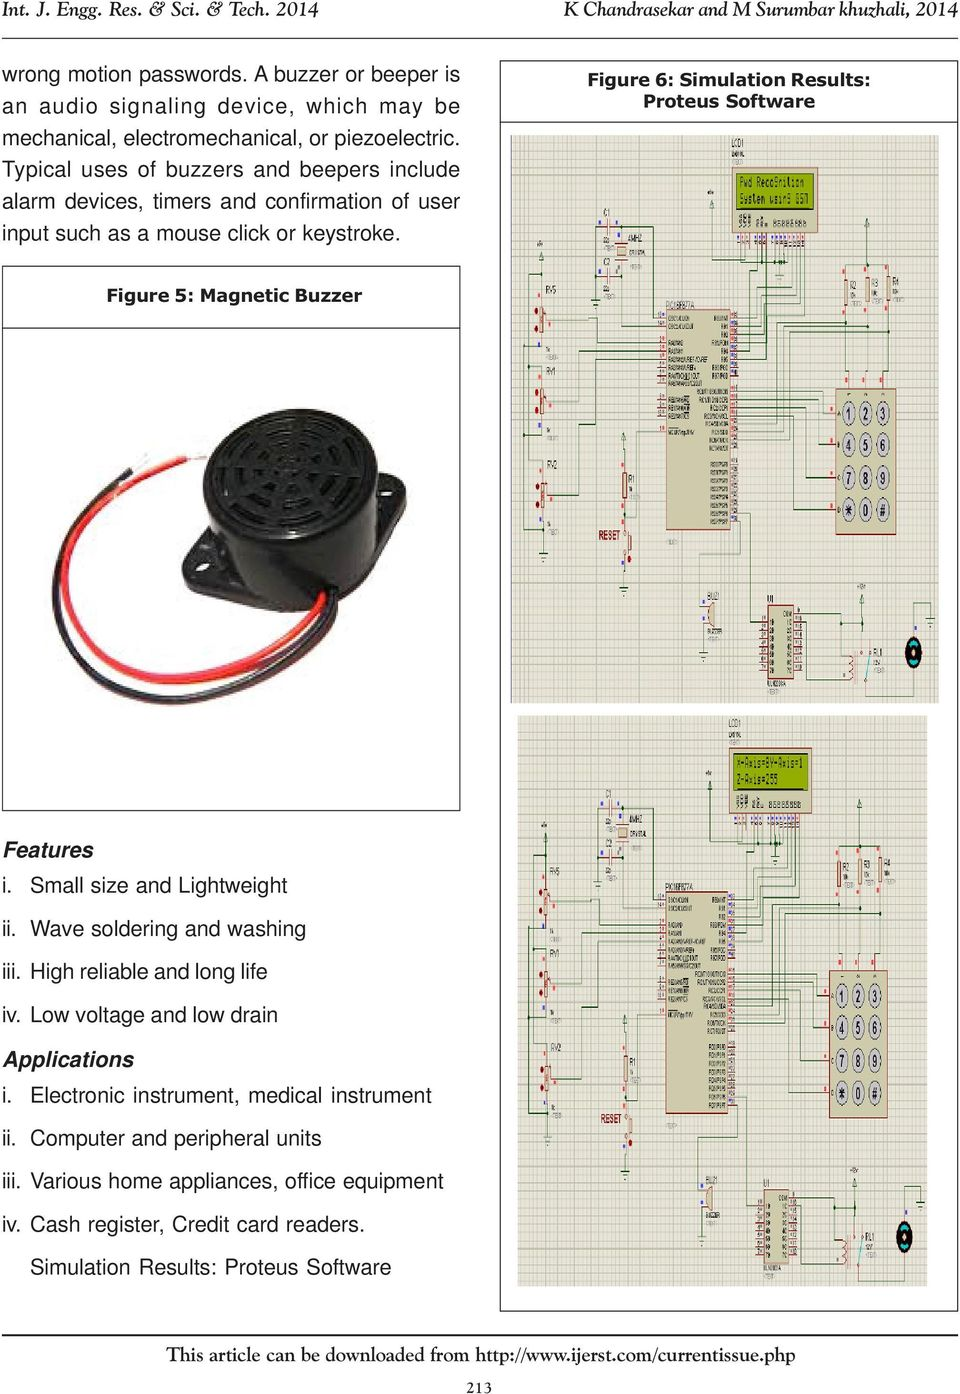 Mems Accelerometer Based Password Recognition System Using Gsm Pdf 3 Axis Pic16f887 Figure 6 Simulation Results Proteus Software 5 Magnetic Buzzer Features I